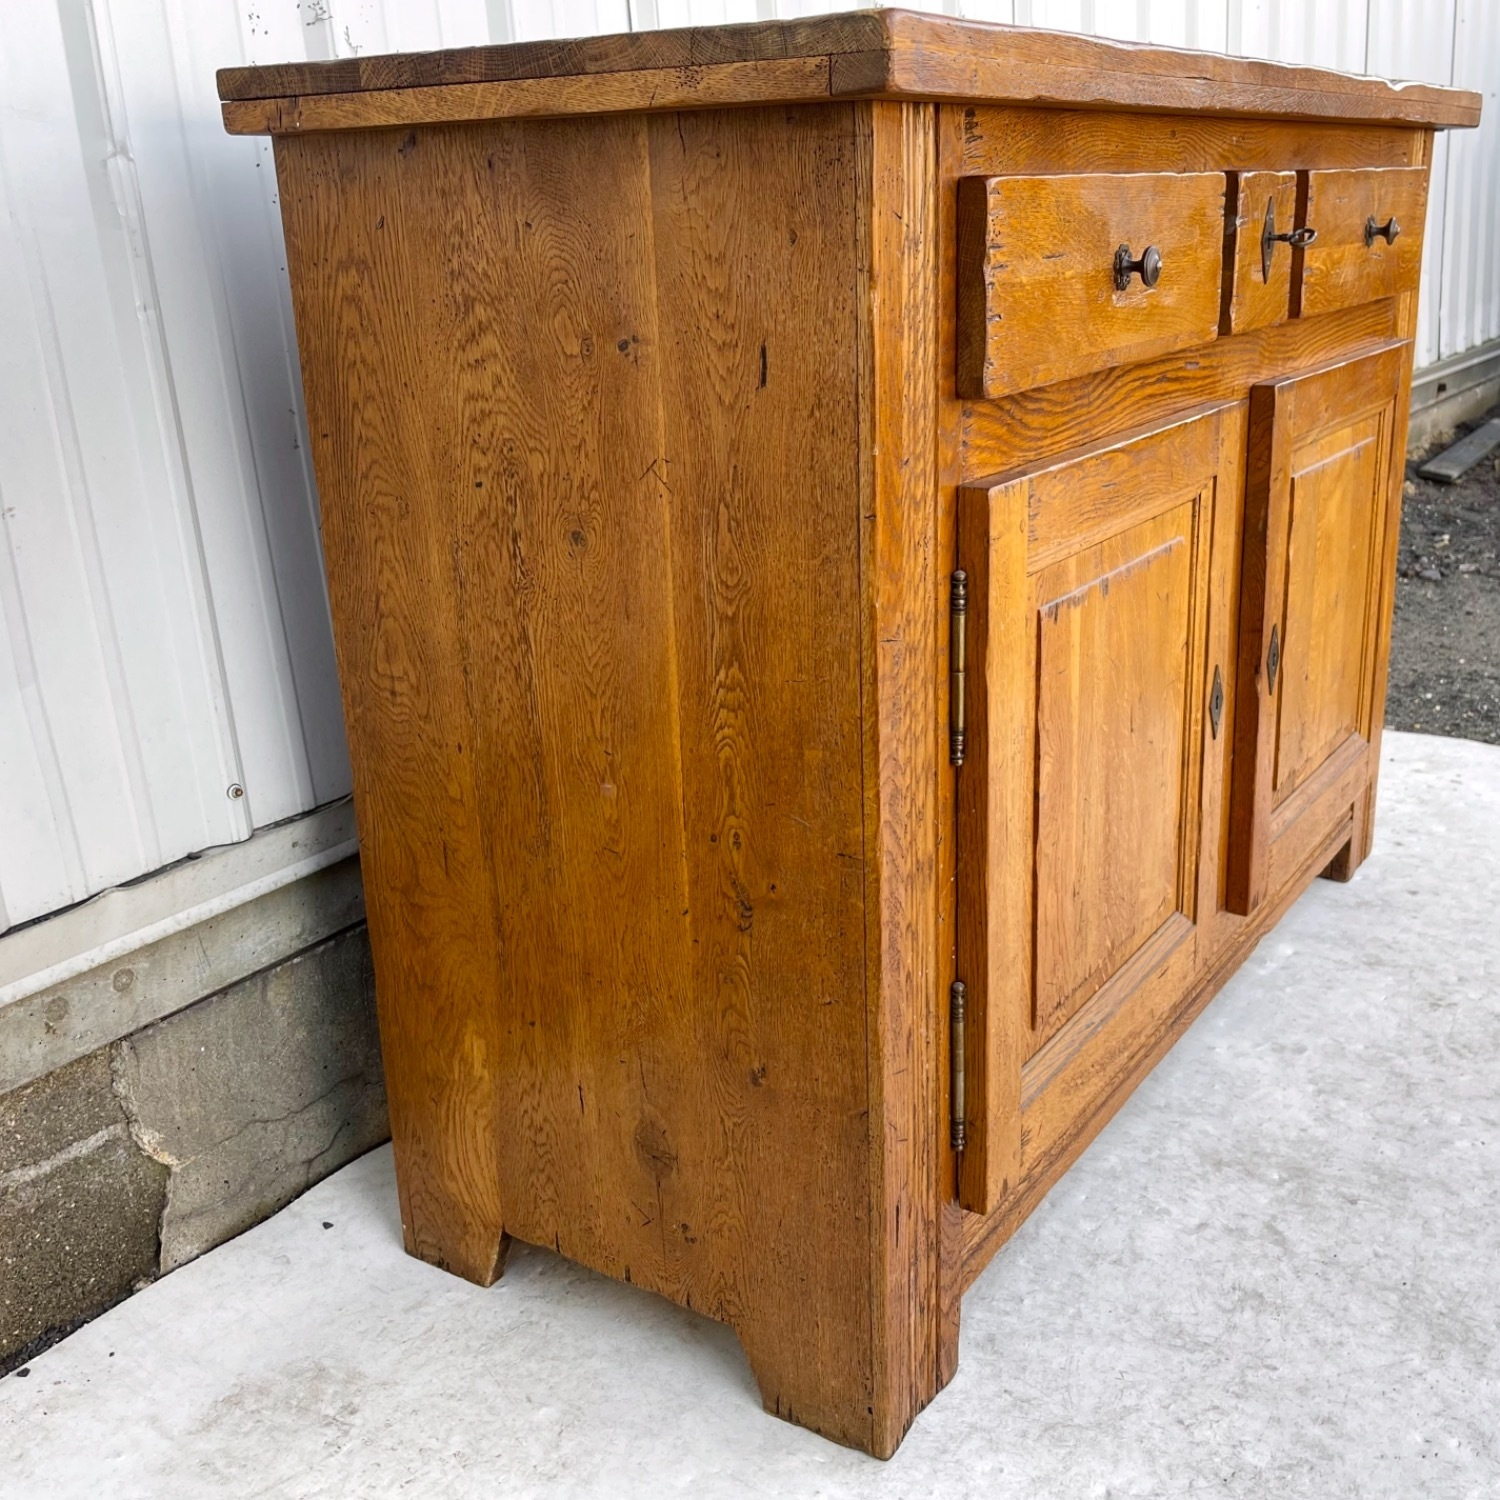 Antique Country Style Cupboard With Topper - image-14